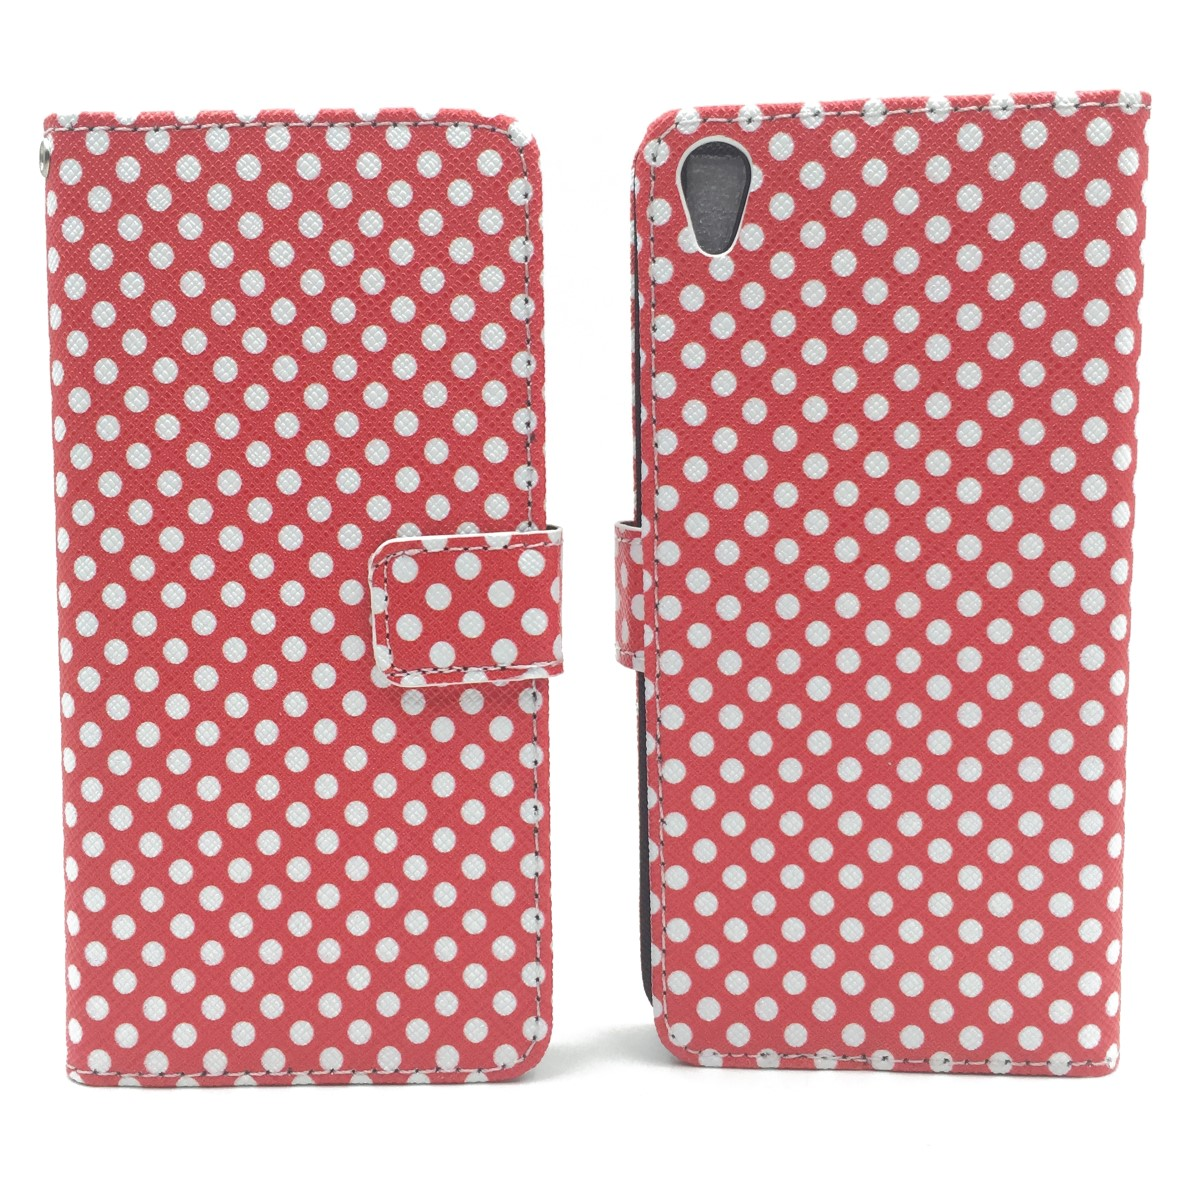 handyh lle tasche f r handy sony xperia xa polka dot rot. Black Bedroom Furniture Sets. Home Design Ideas